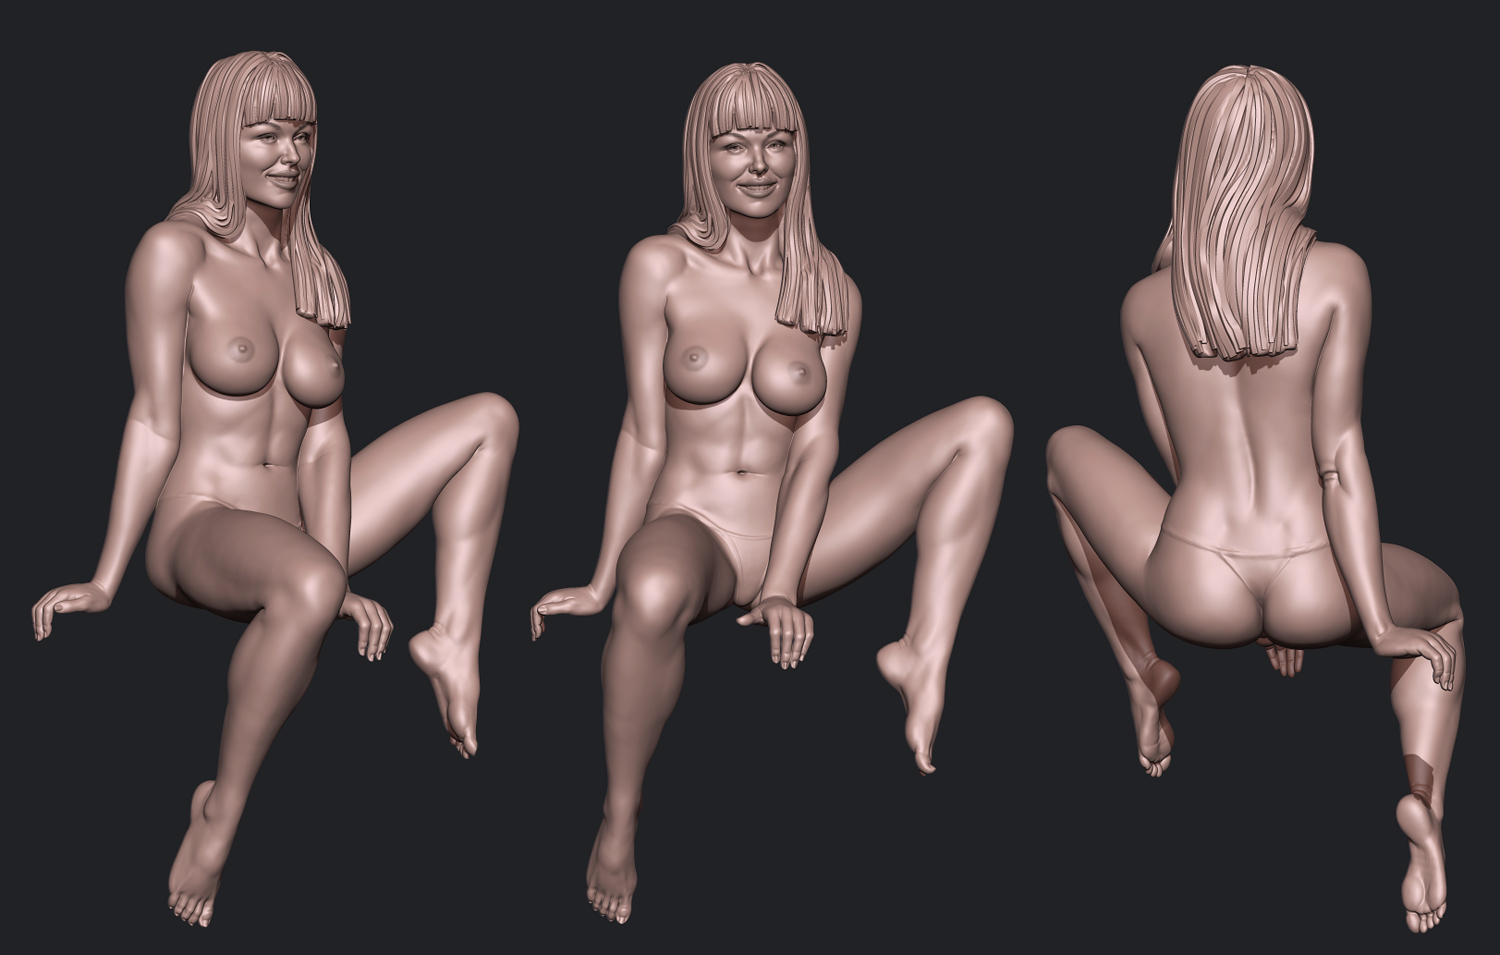 Daz 3d female models nude pron pictures